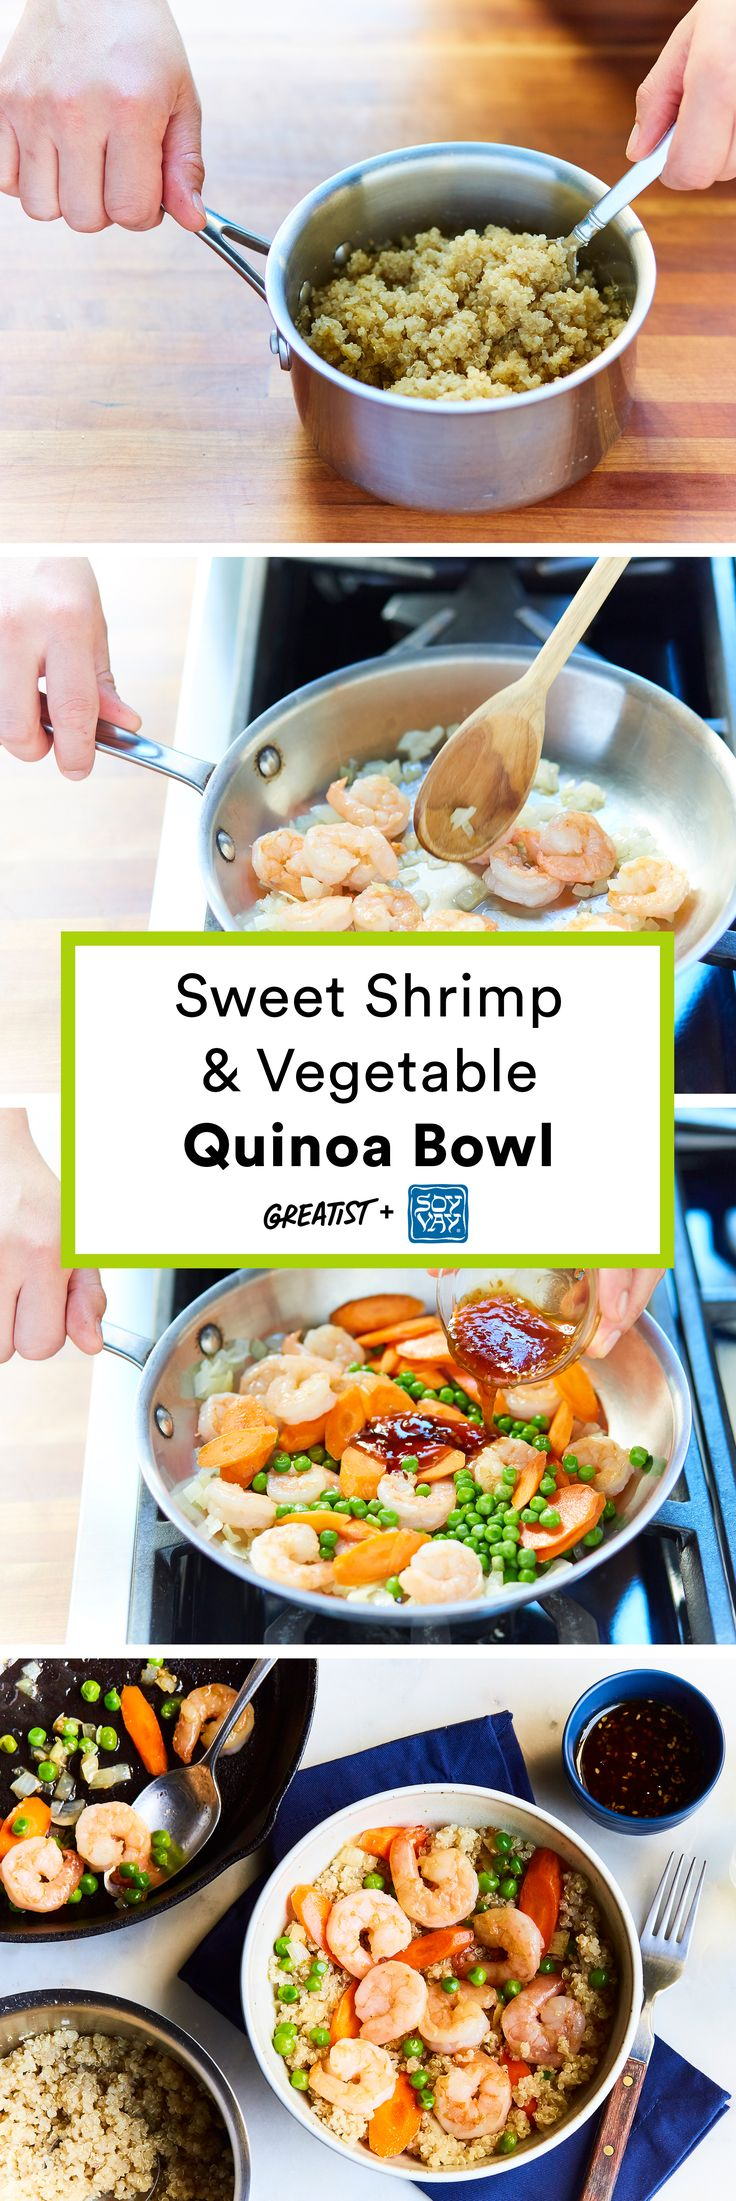 Sweet Shrimp & Vegetable Quinoa Bowl @soyvay #partner